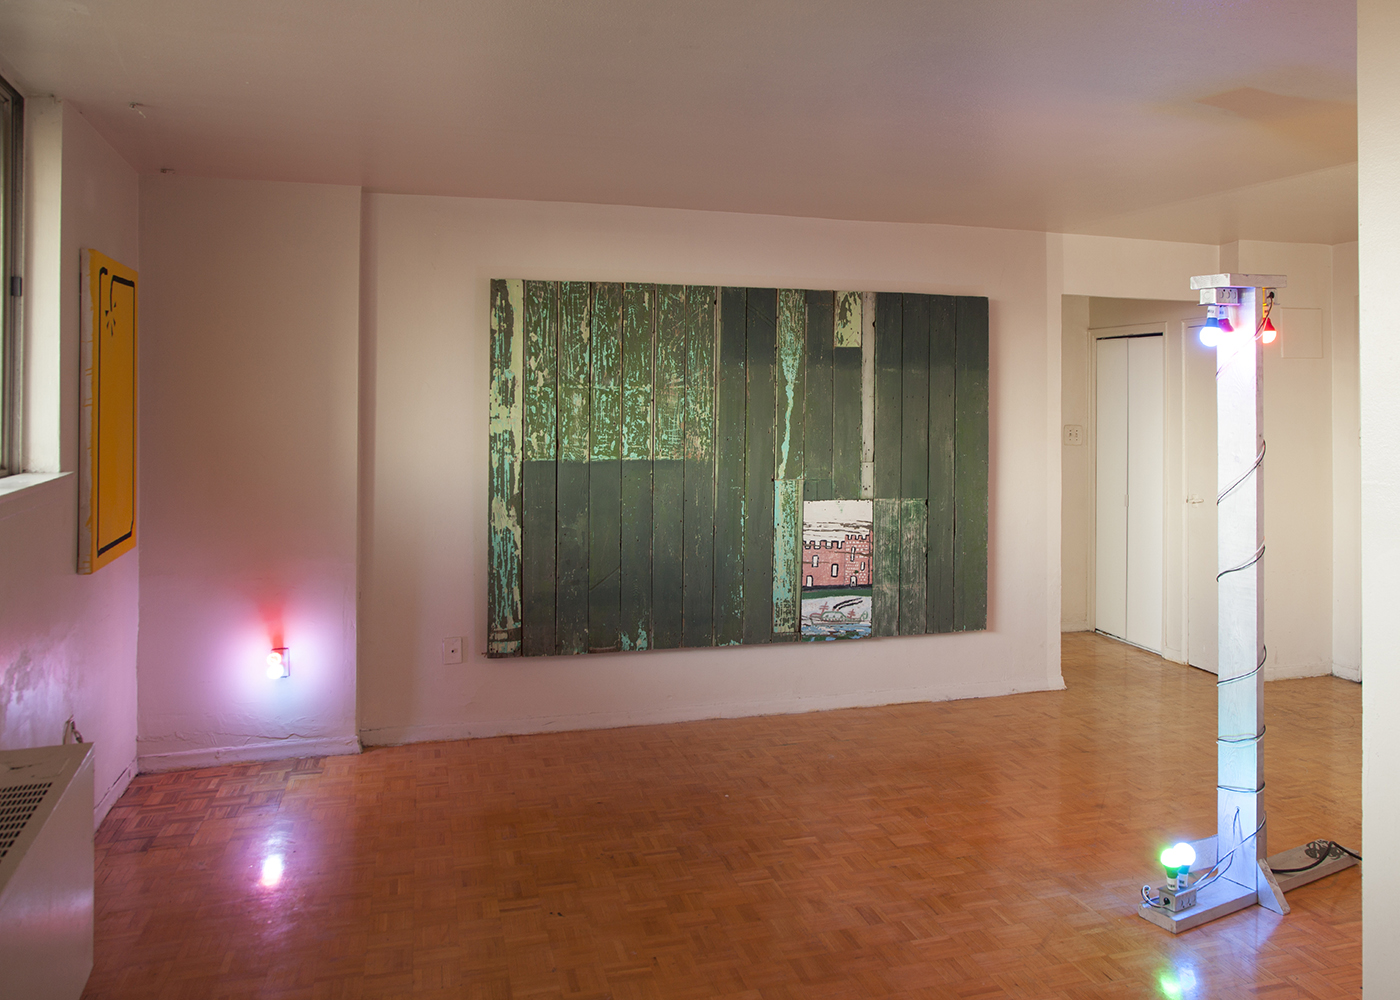 """Works by (from left) Dana Slijboom, Oliver Roberts and François A. Côté, from """"Flow Channel,"""" February 5 to 7, 2016. Courtesy Carrier Arts."""